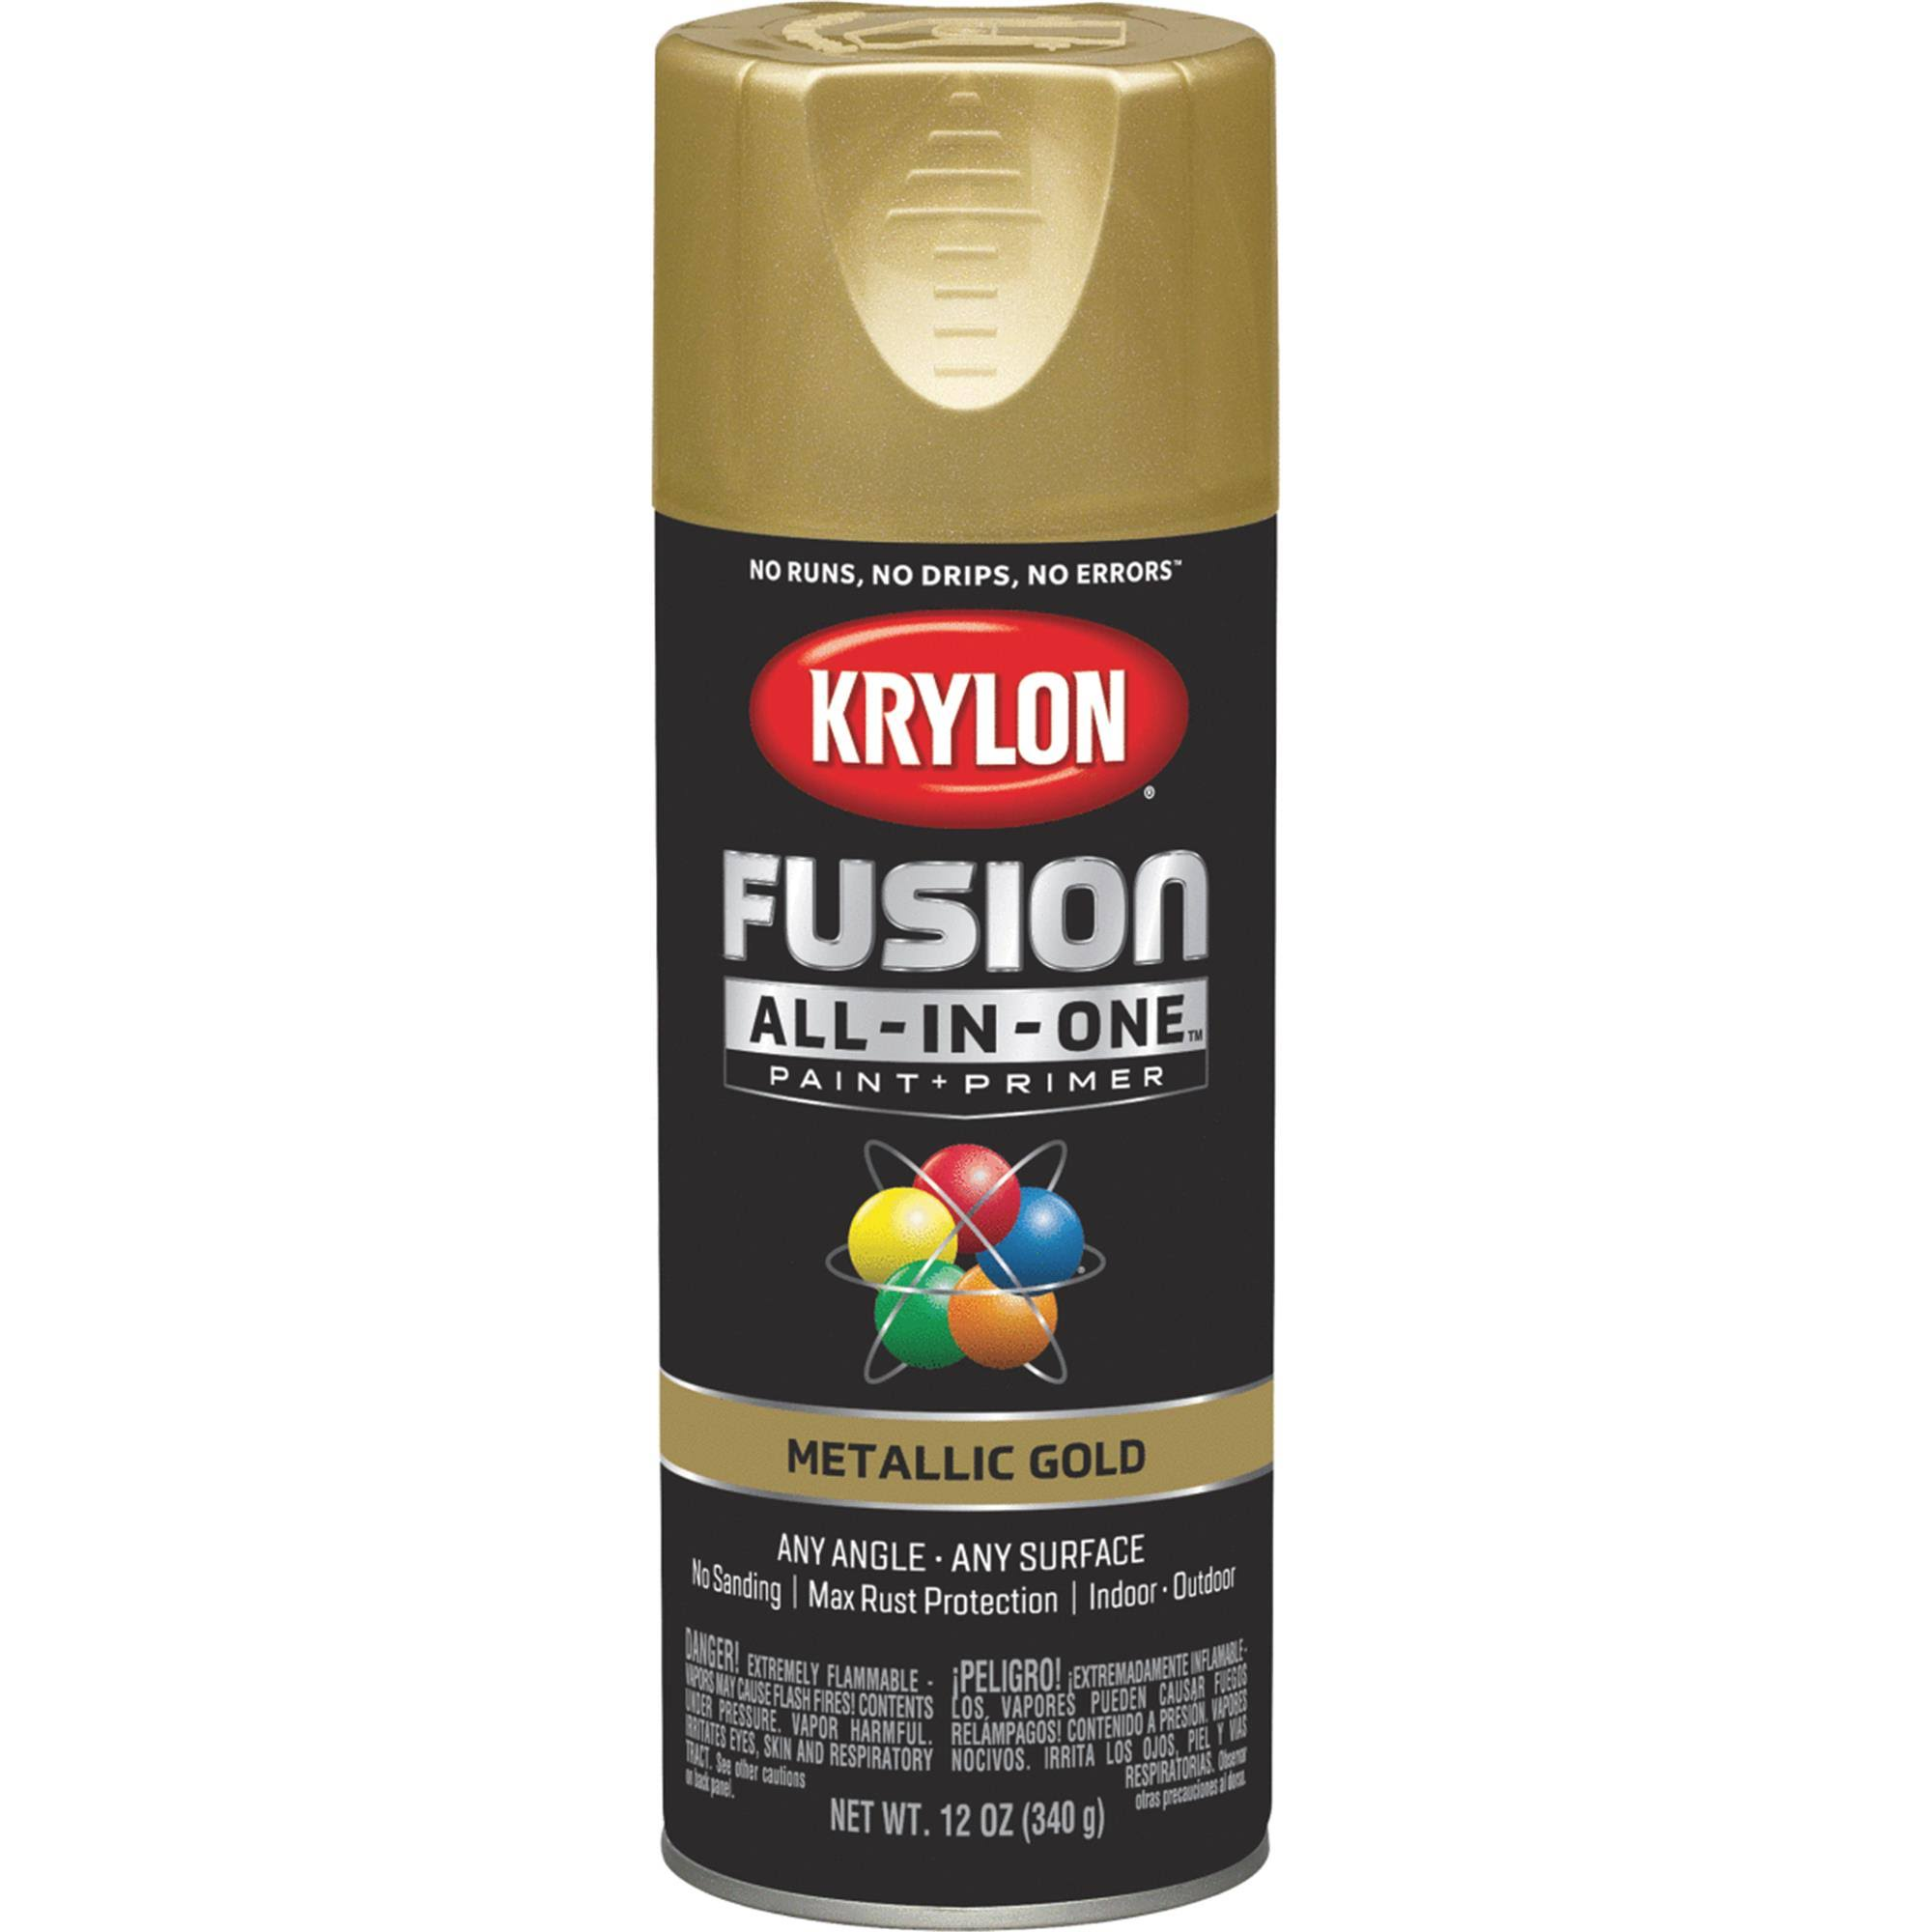 Krylon Fusion All In One Spray Paint and Primer - Metallic Gold, 12oz